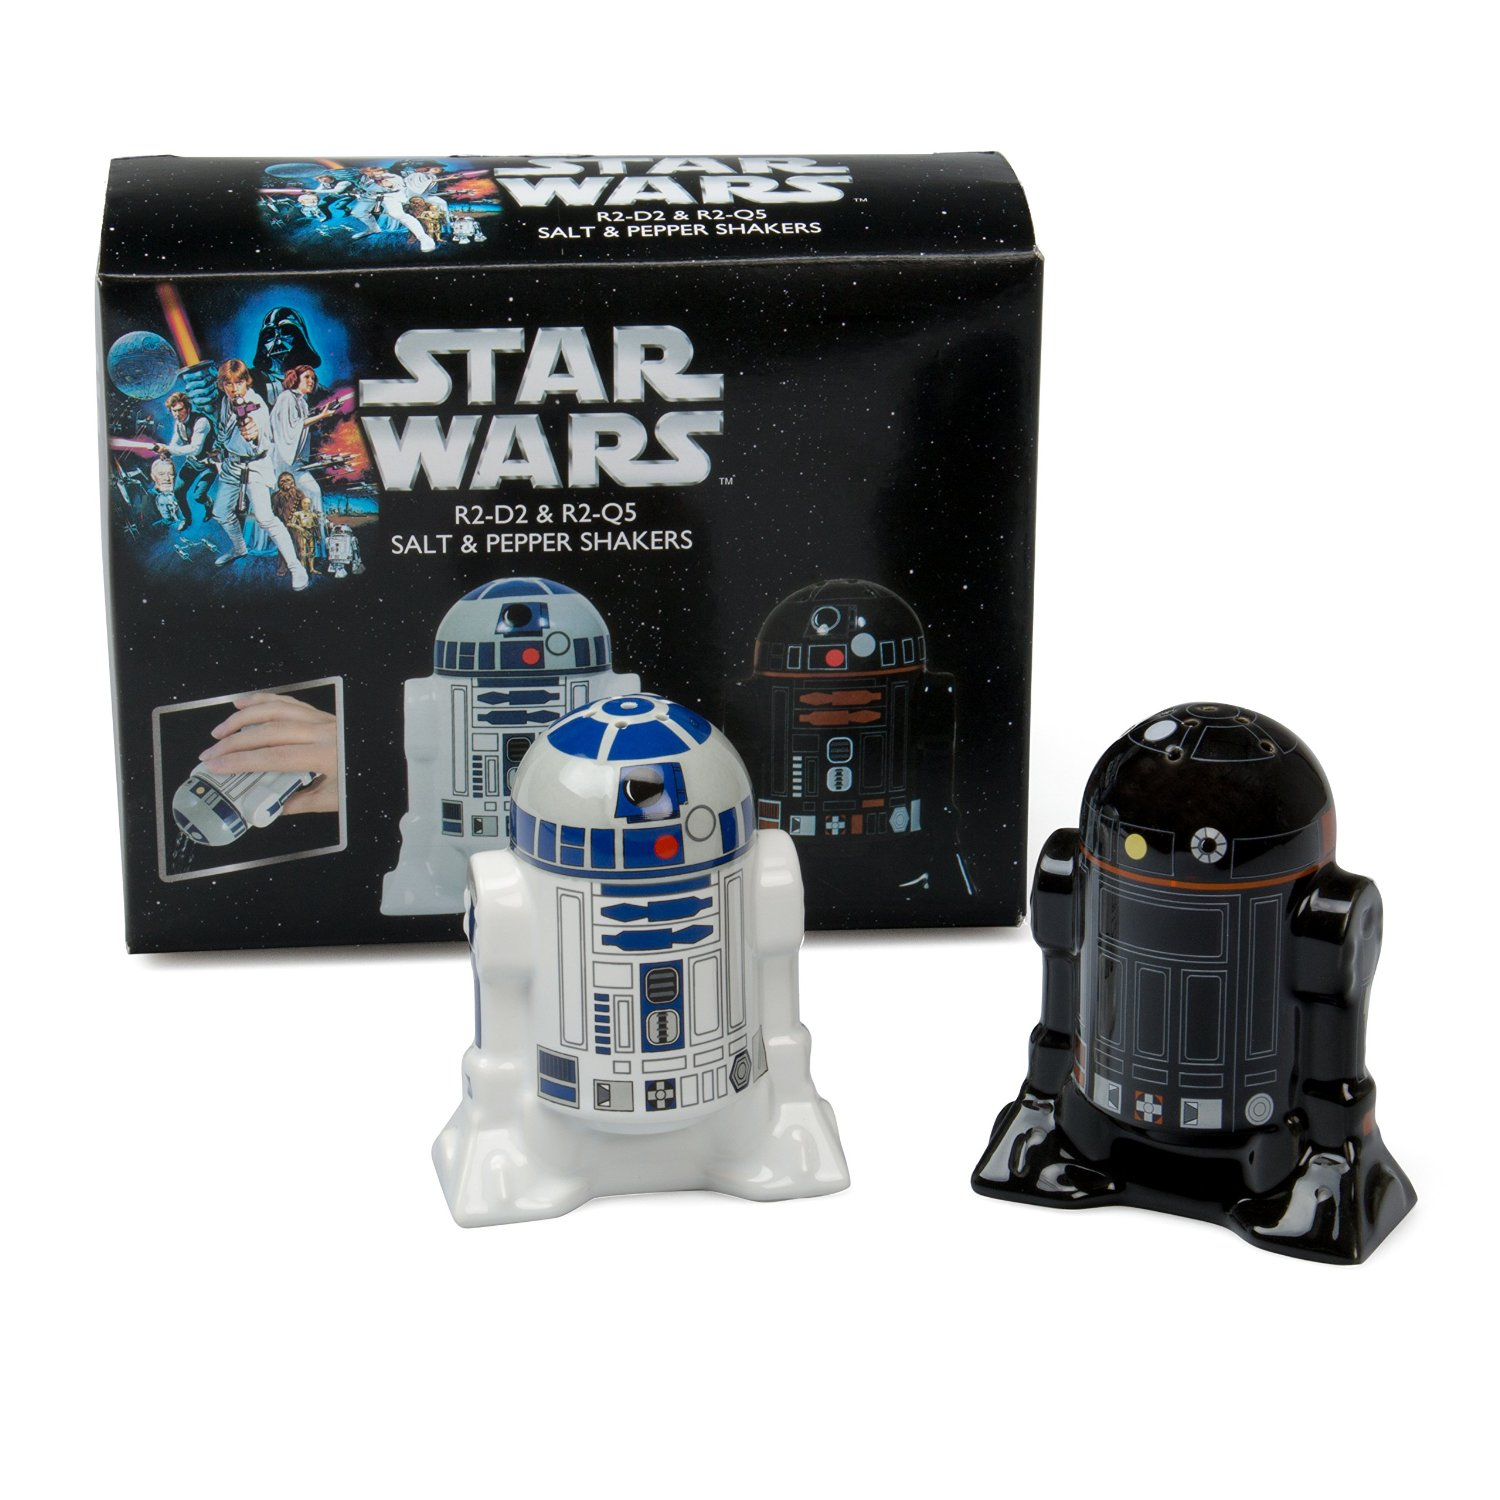 R2-D2 and R2-Q5 Star Wars Salt and Pepper Shakers